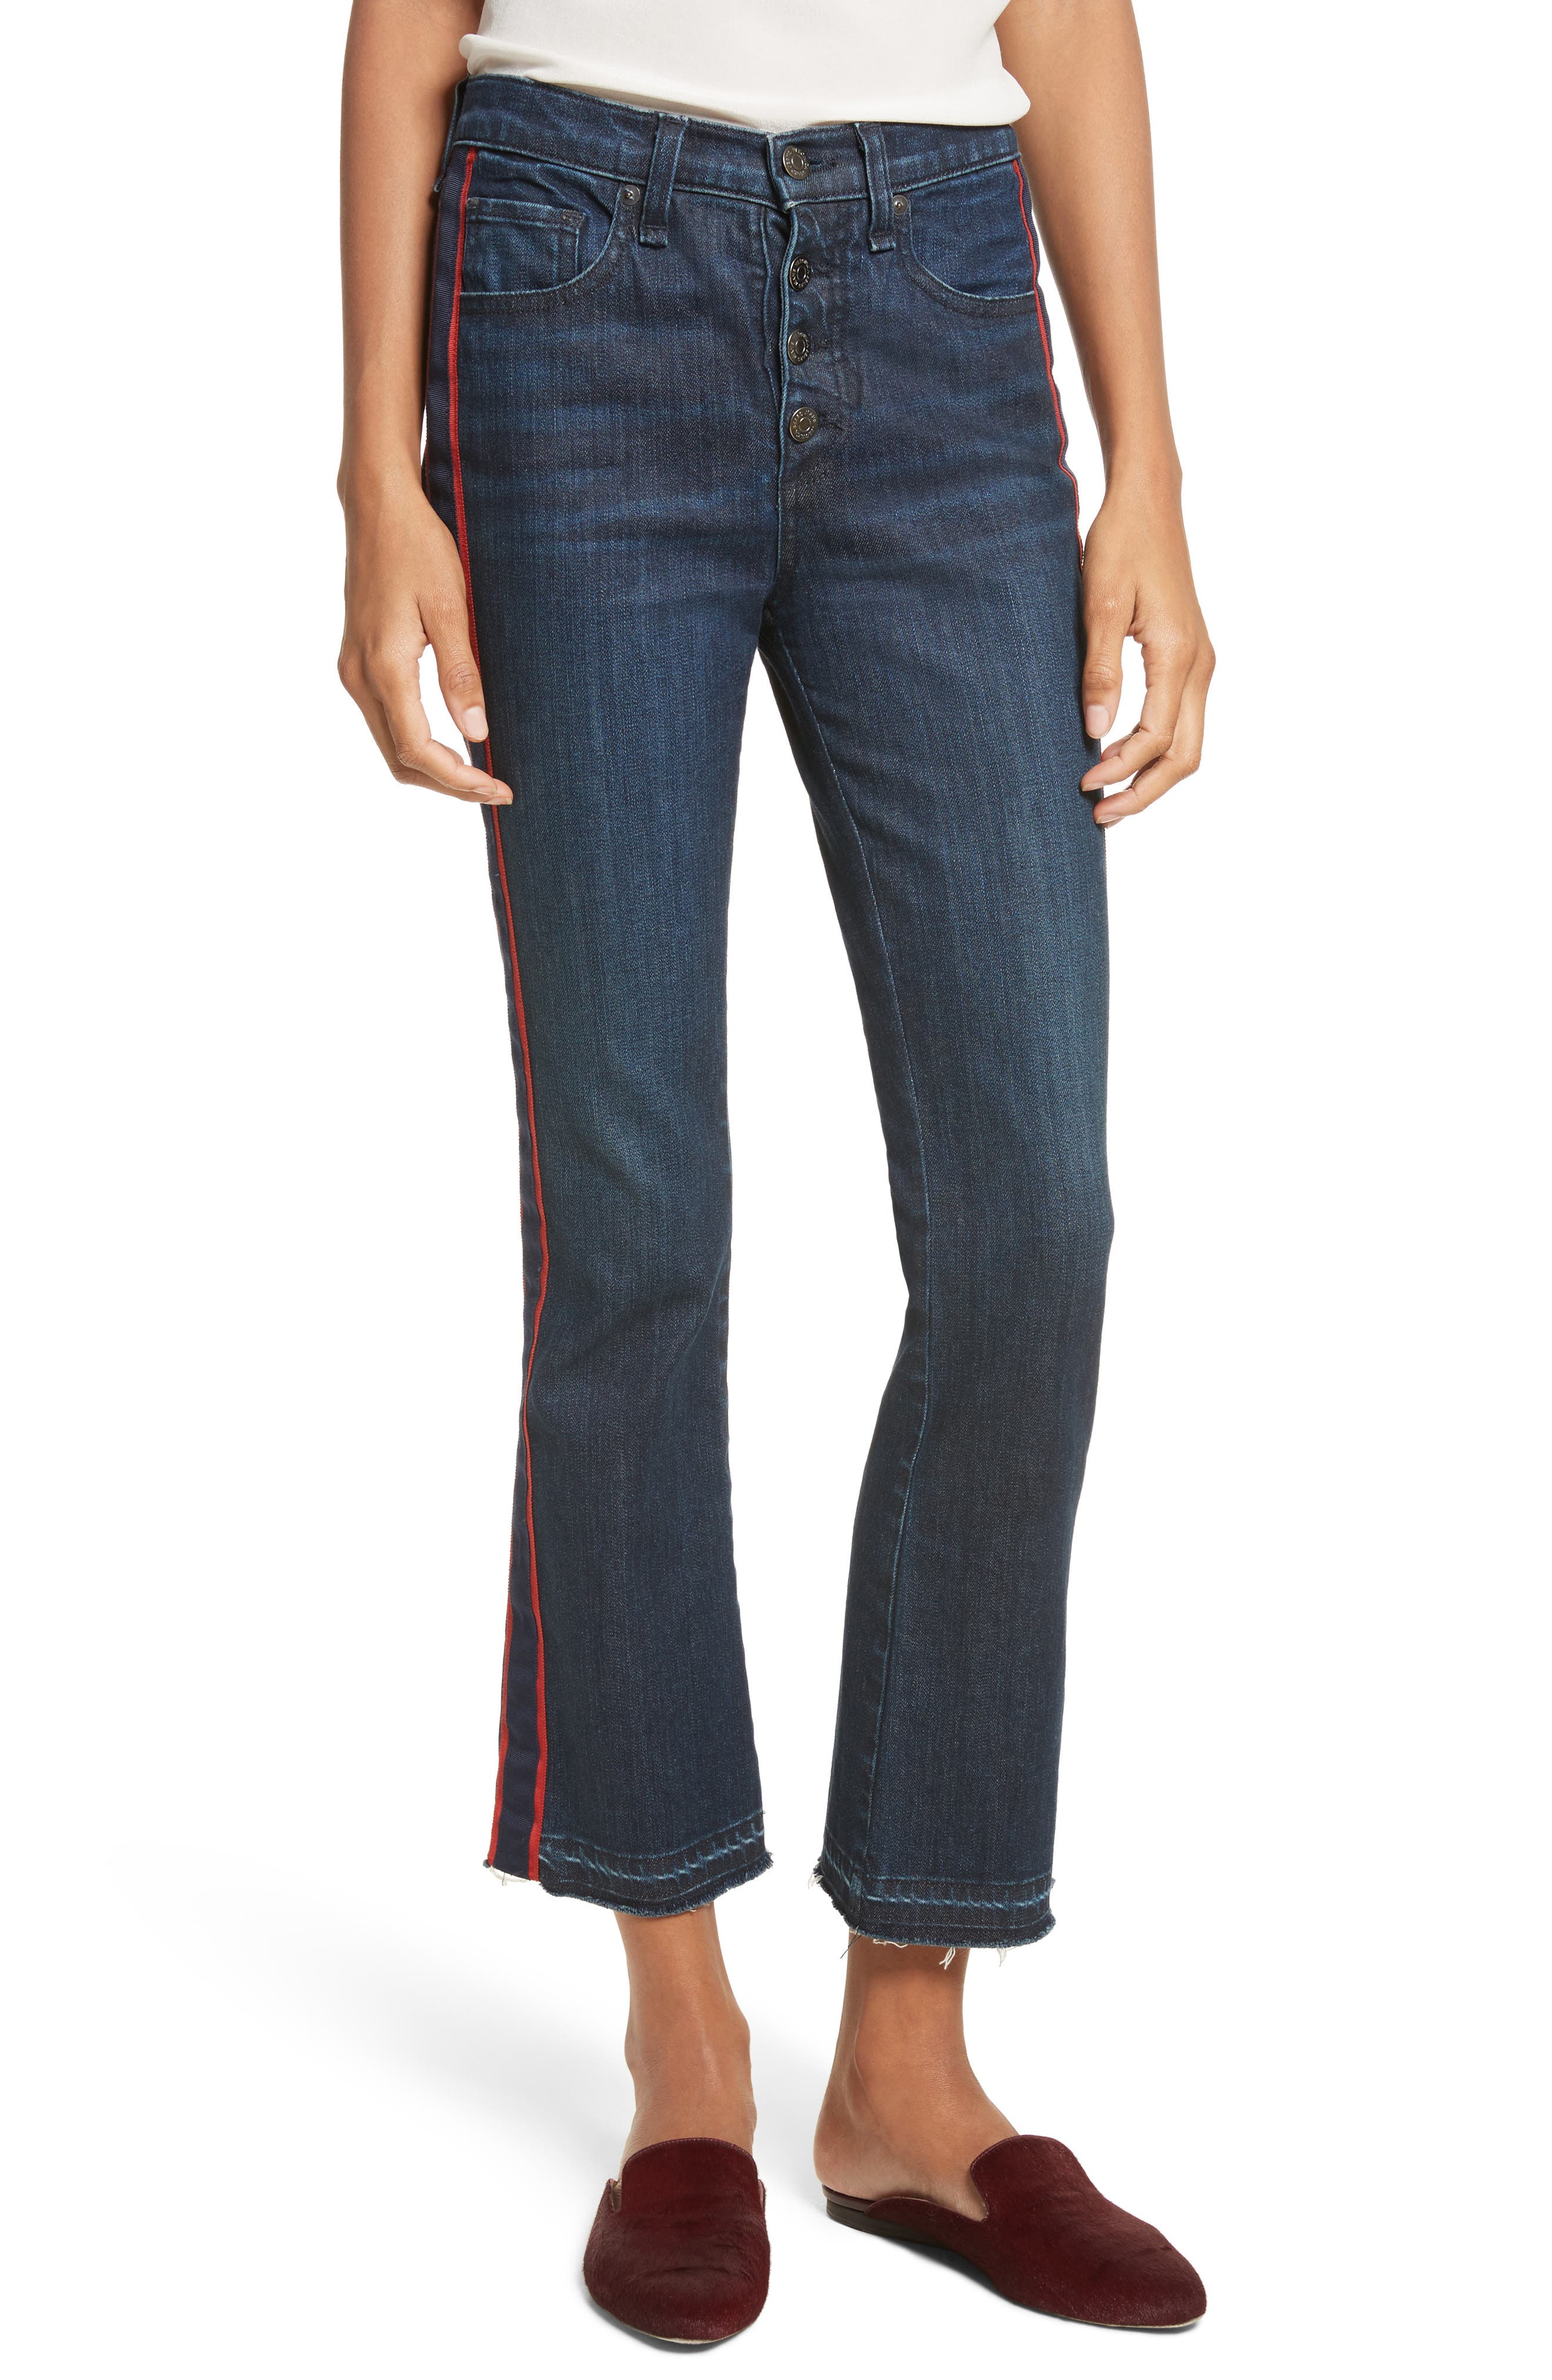 VERONICA BEARD, Carolyn Tuxedo Stripe Baby Boot Crop Jeans, Main thumbnail 1, color, MIDNIGHT FRAY/ RED